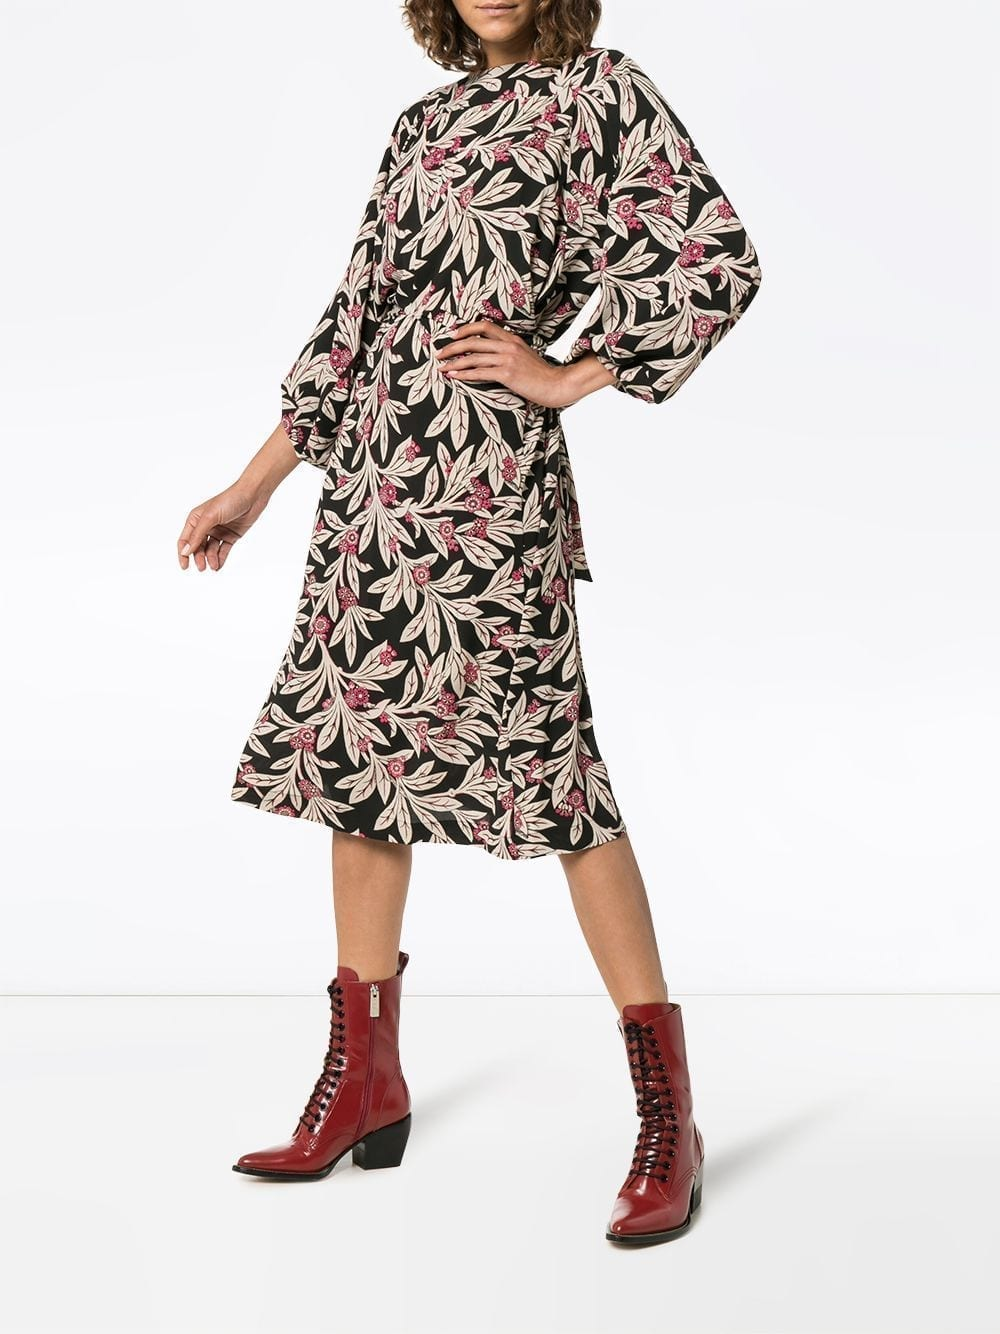 ISABEL MARANT ÉTOILE Lisa Wrap Black / Floral Printed Dress